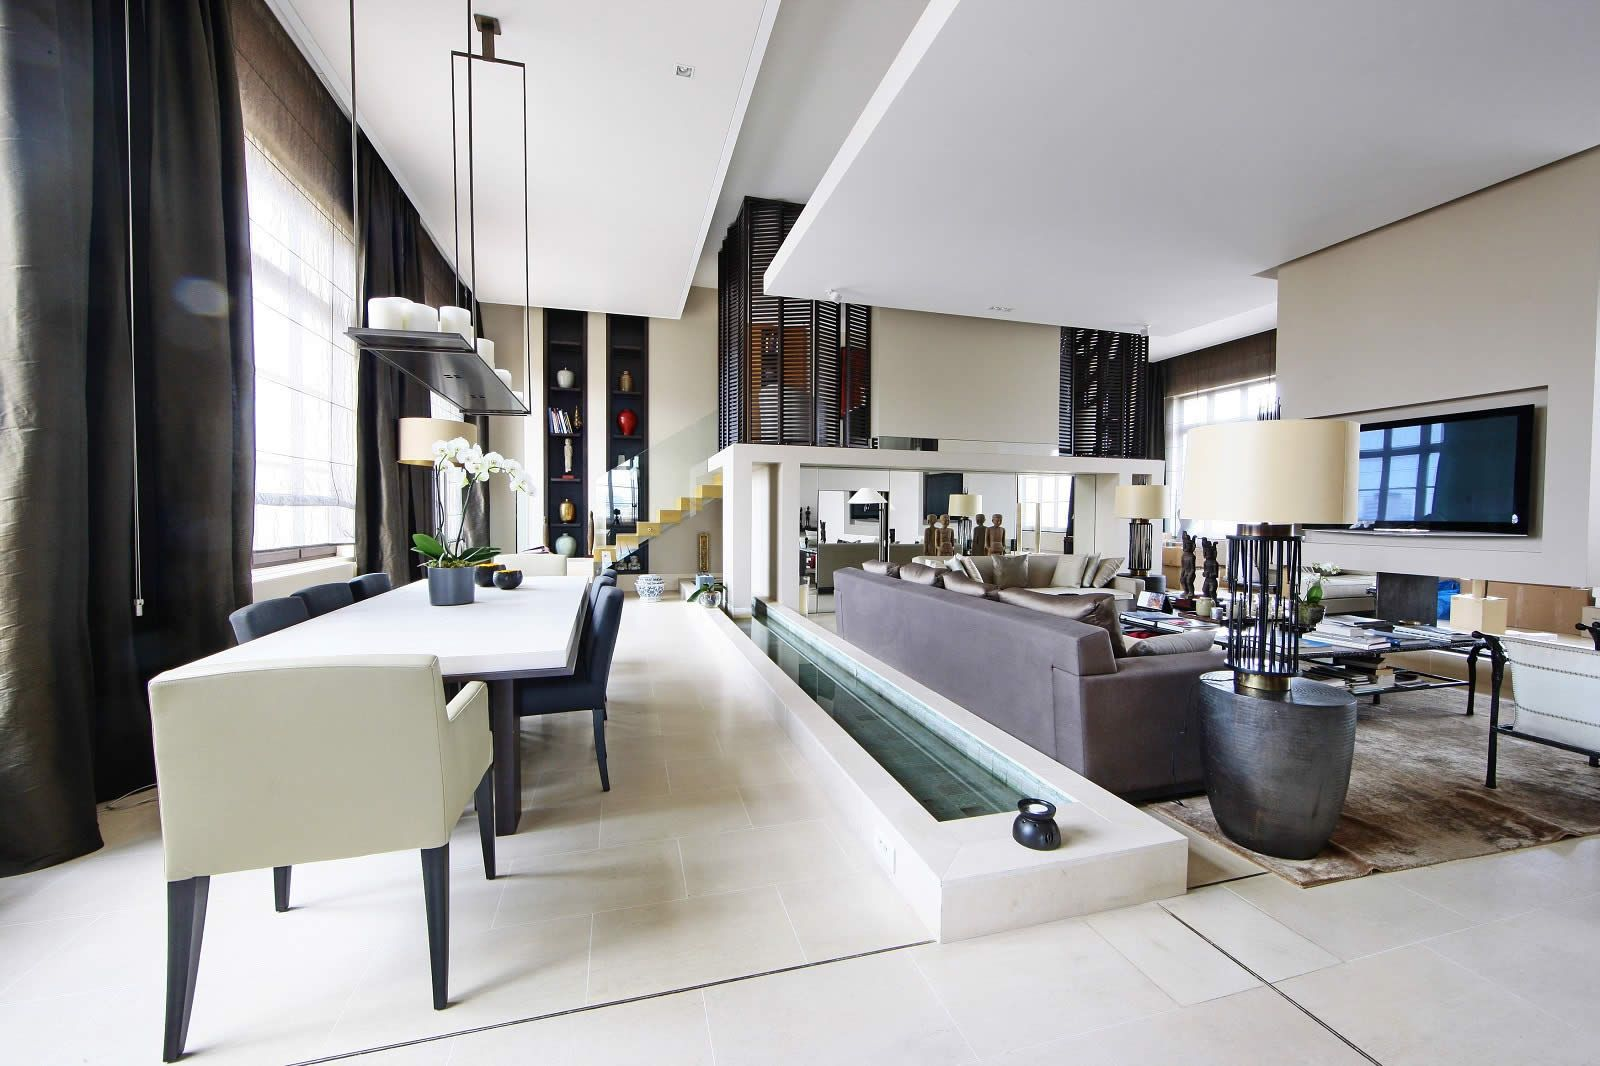 D life home interiors life in an apartment of an architect youud love going home if it